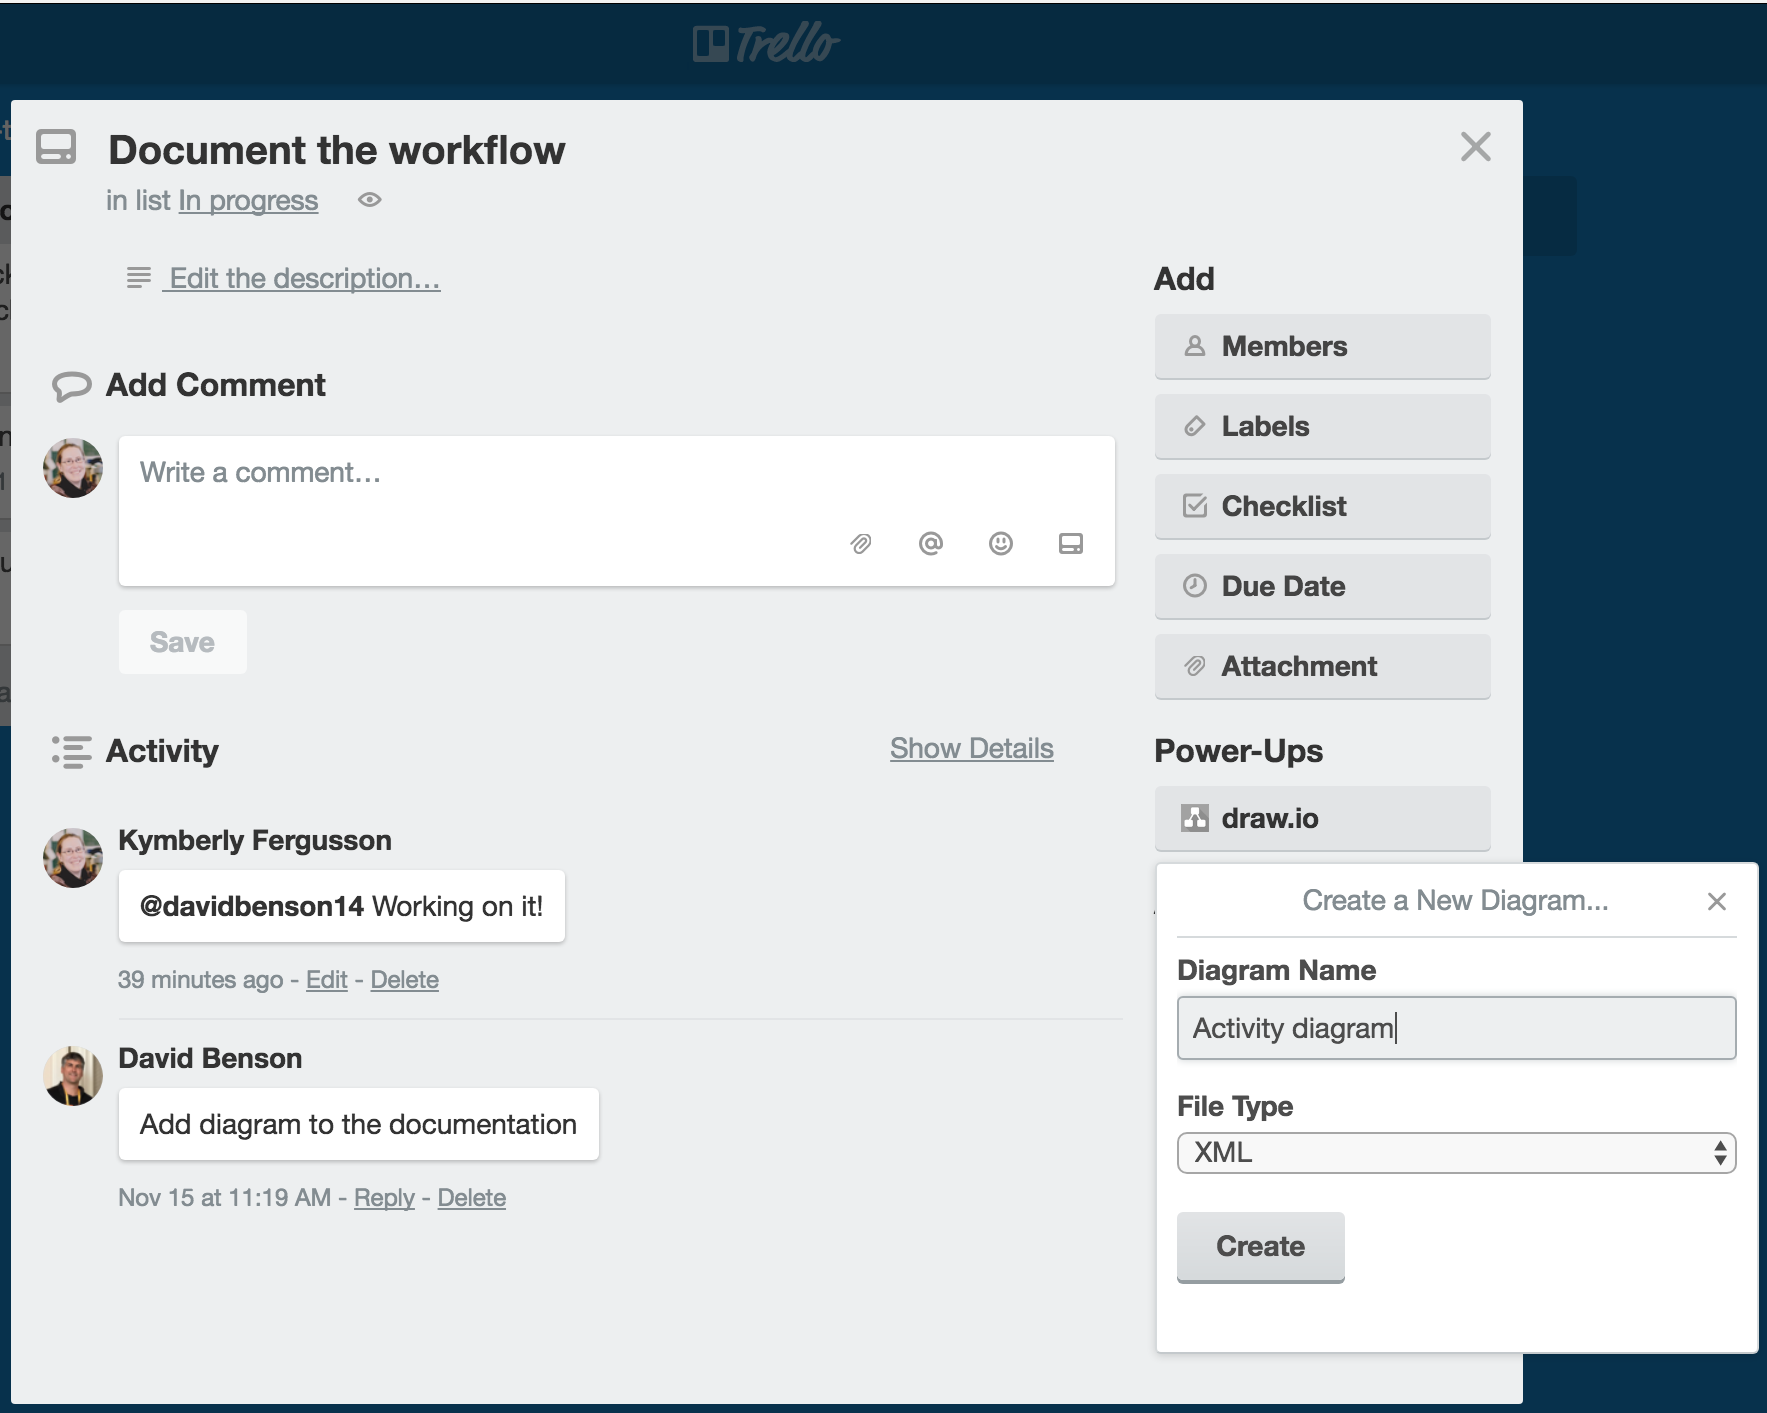 draw io is now available as a trello power